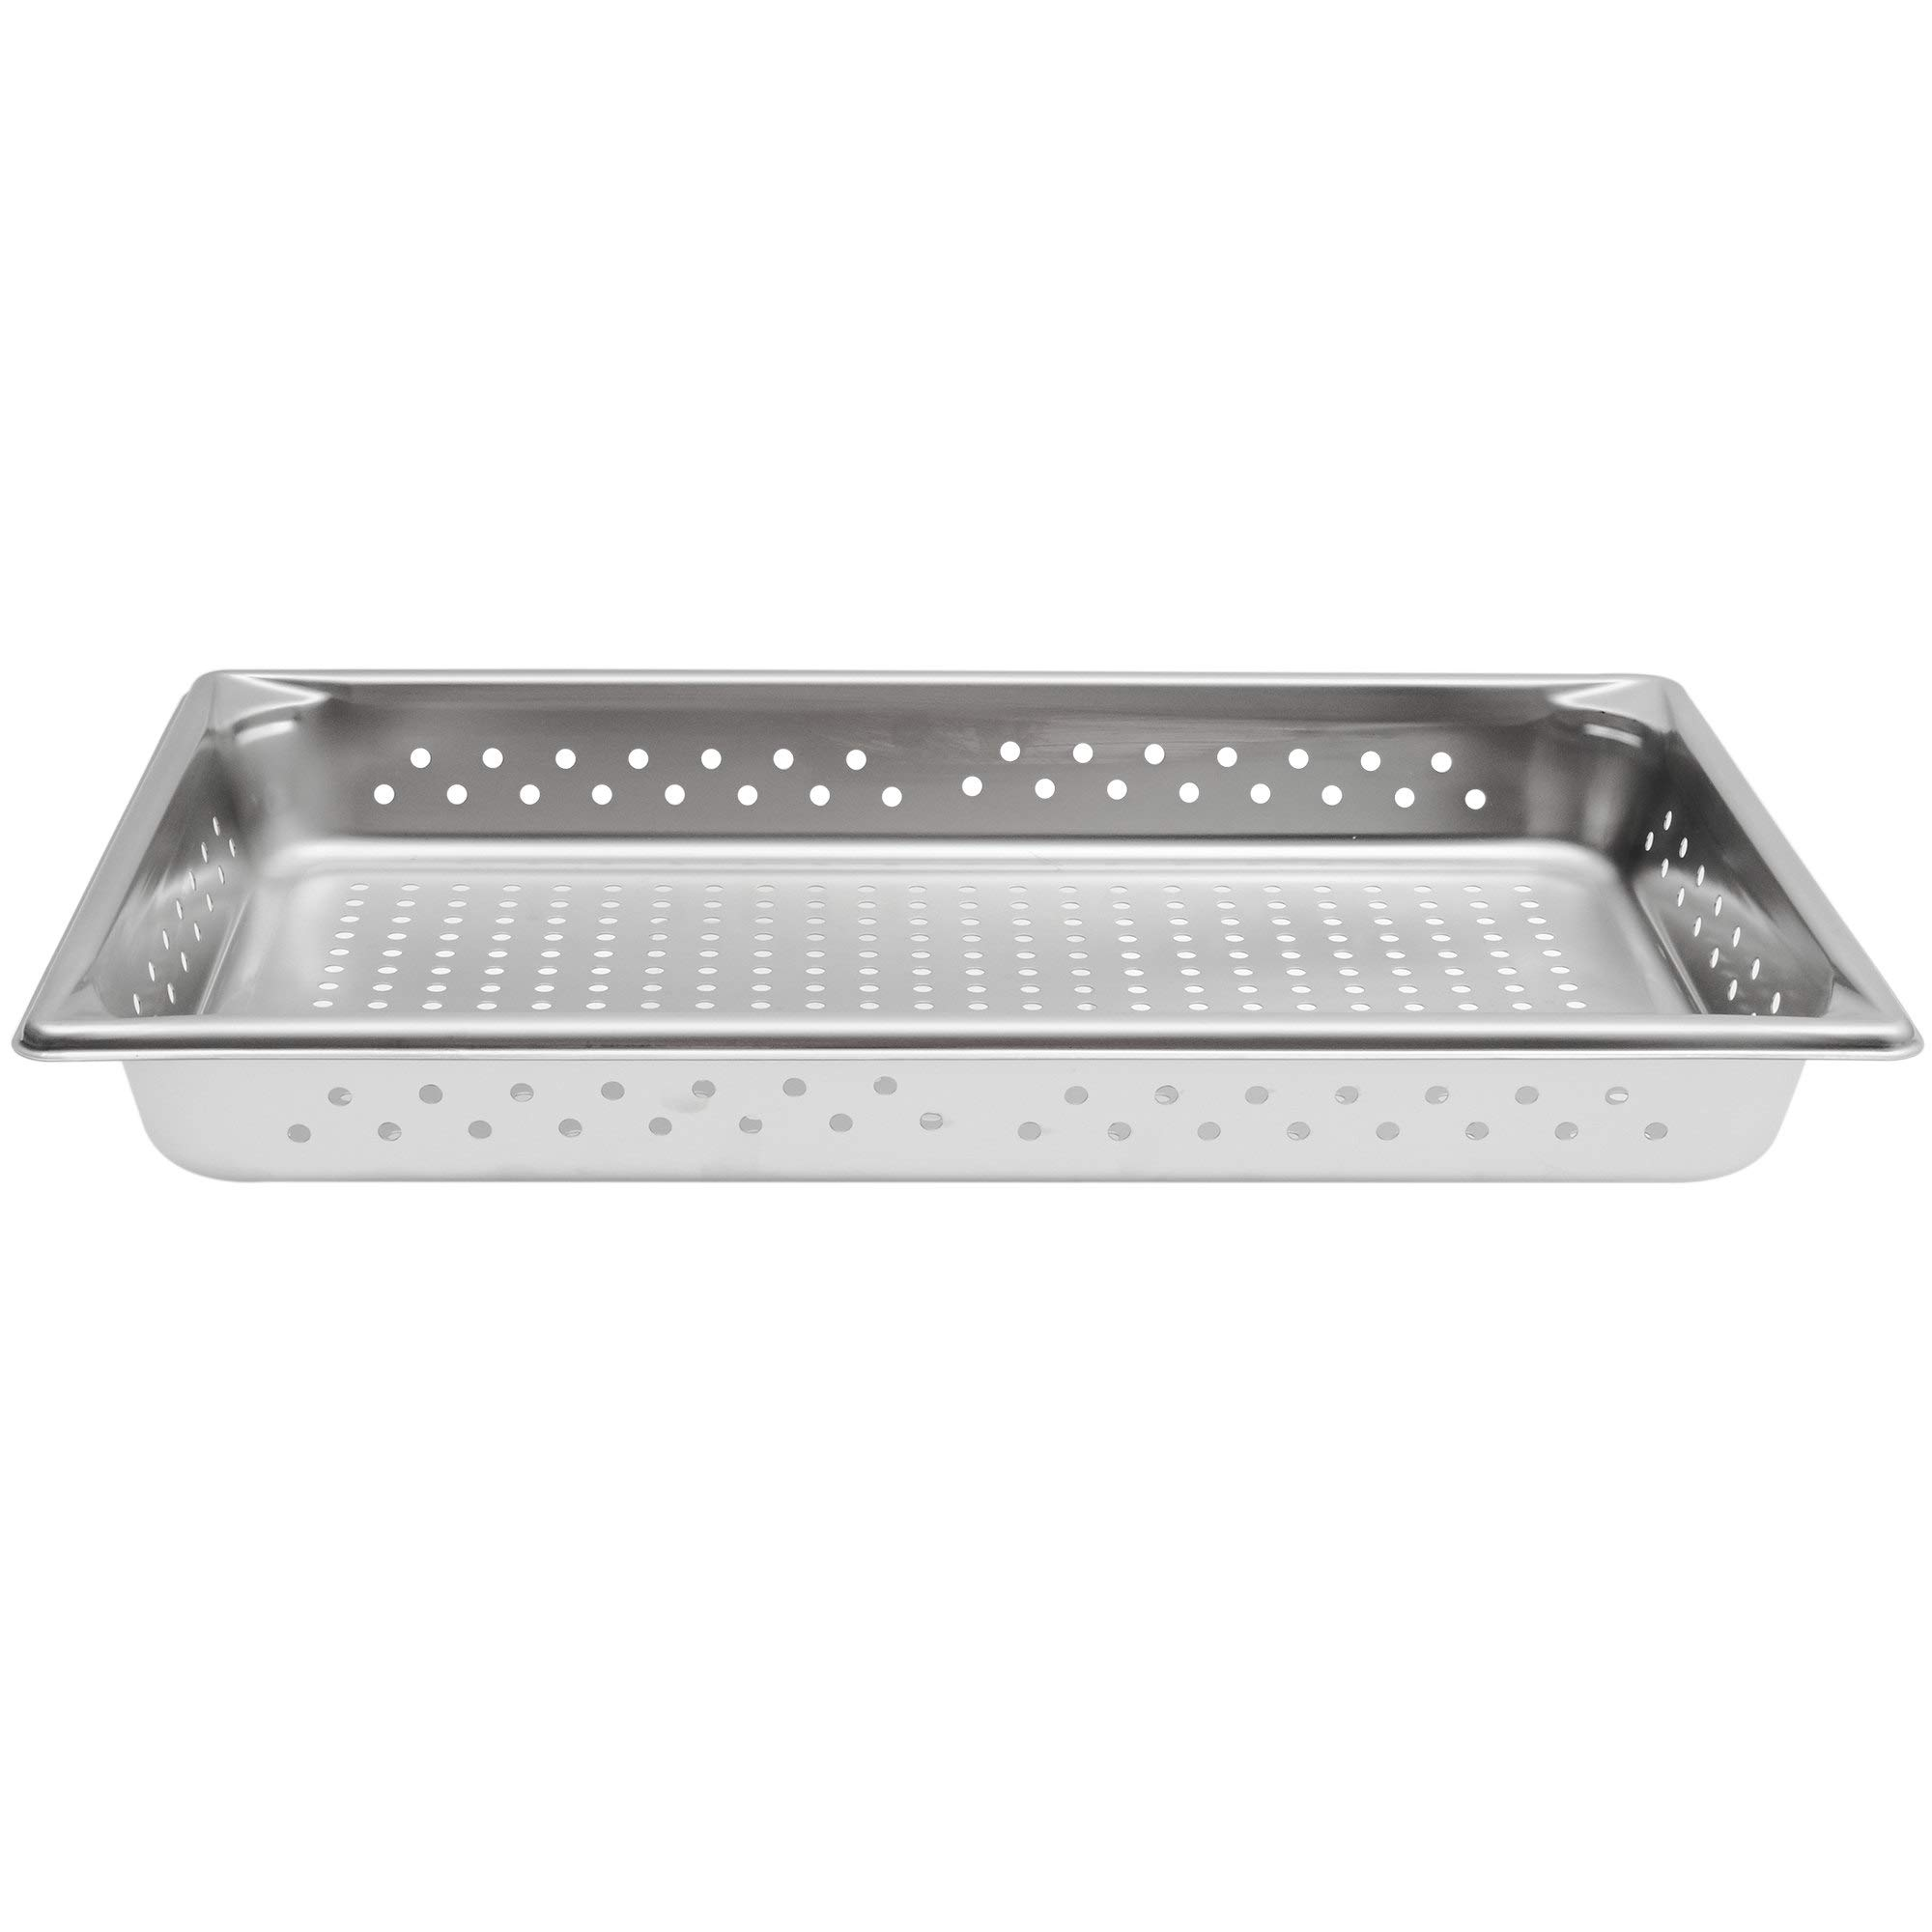 TableTop King 30023 Super Pan V Full Size Anti-Jam Stainless Steel Perforated Steam Table/Hotel Pan - 2 1/2'' Deep by TableTop King